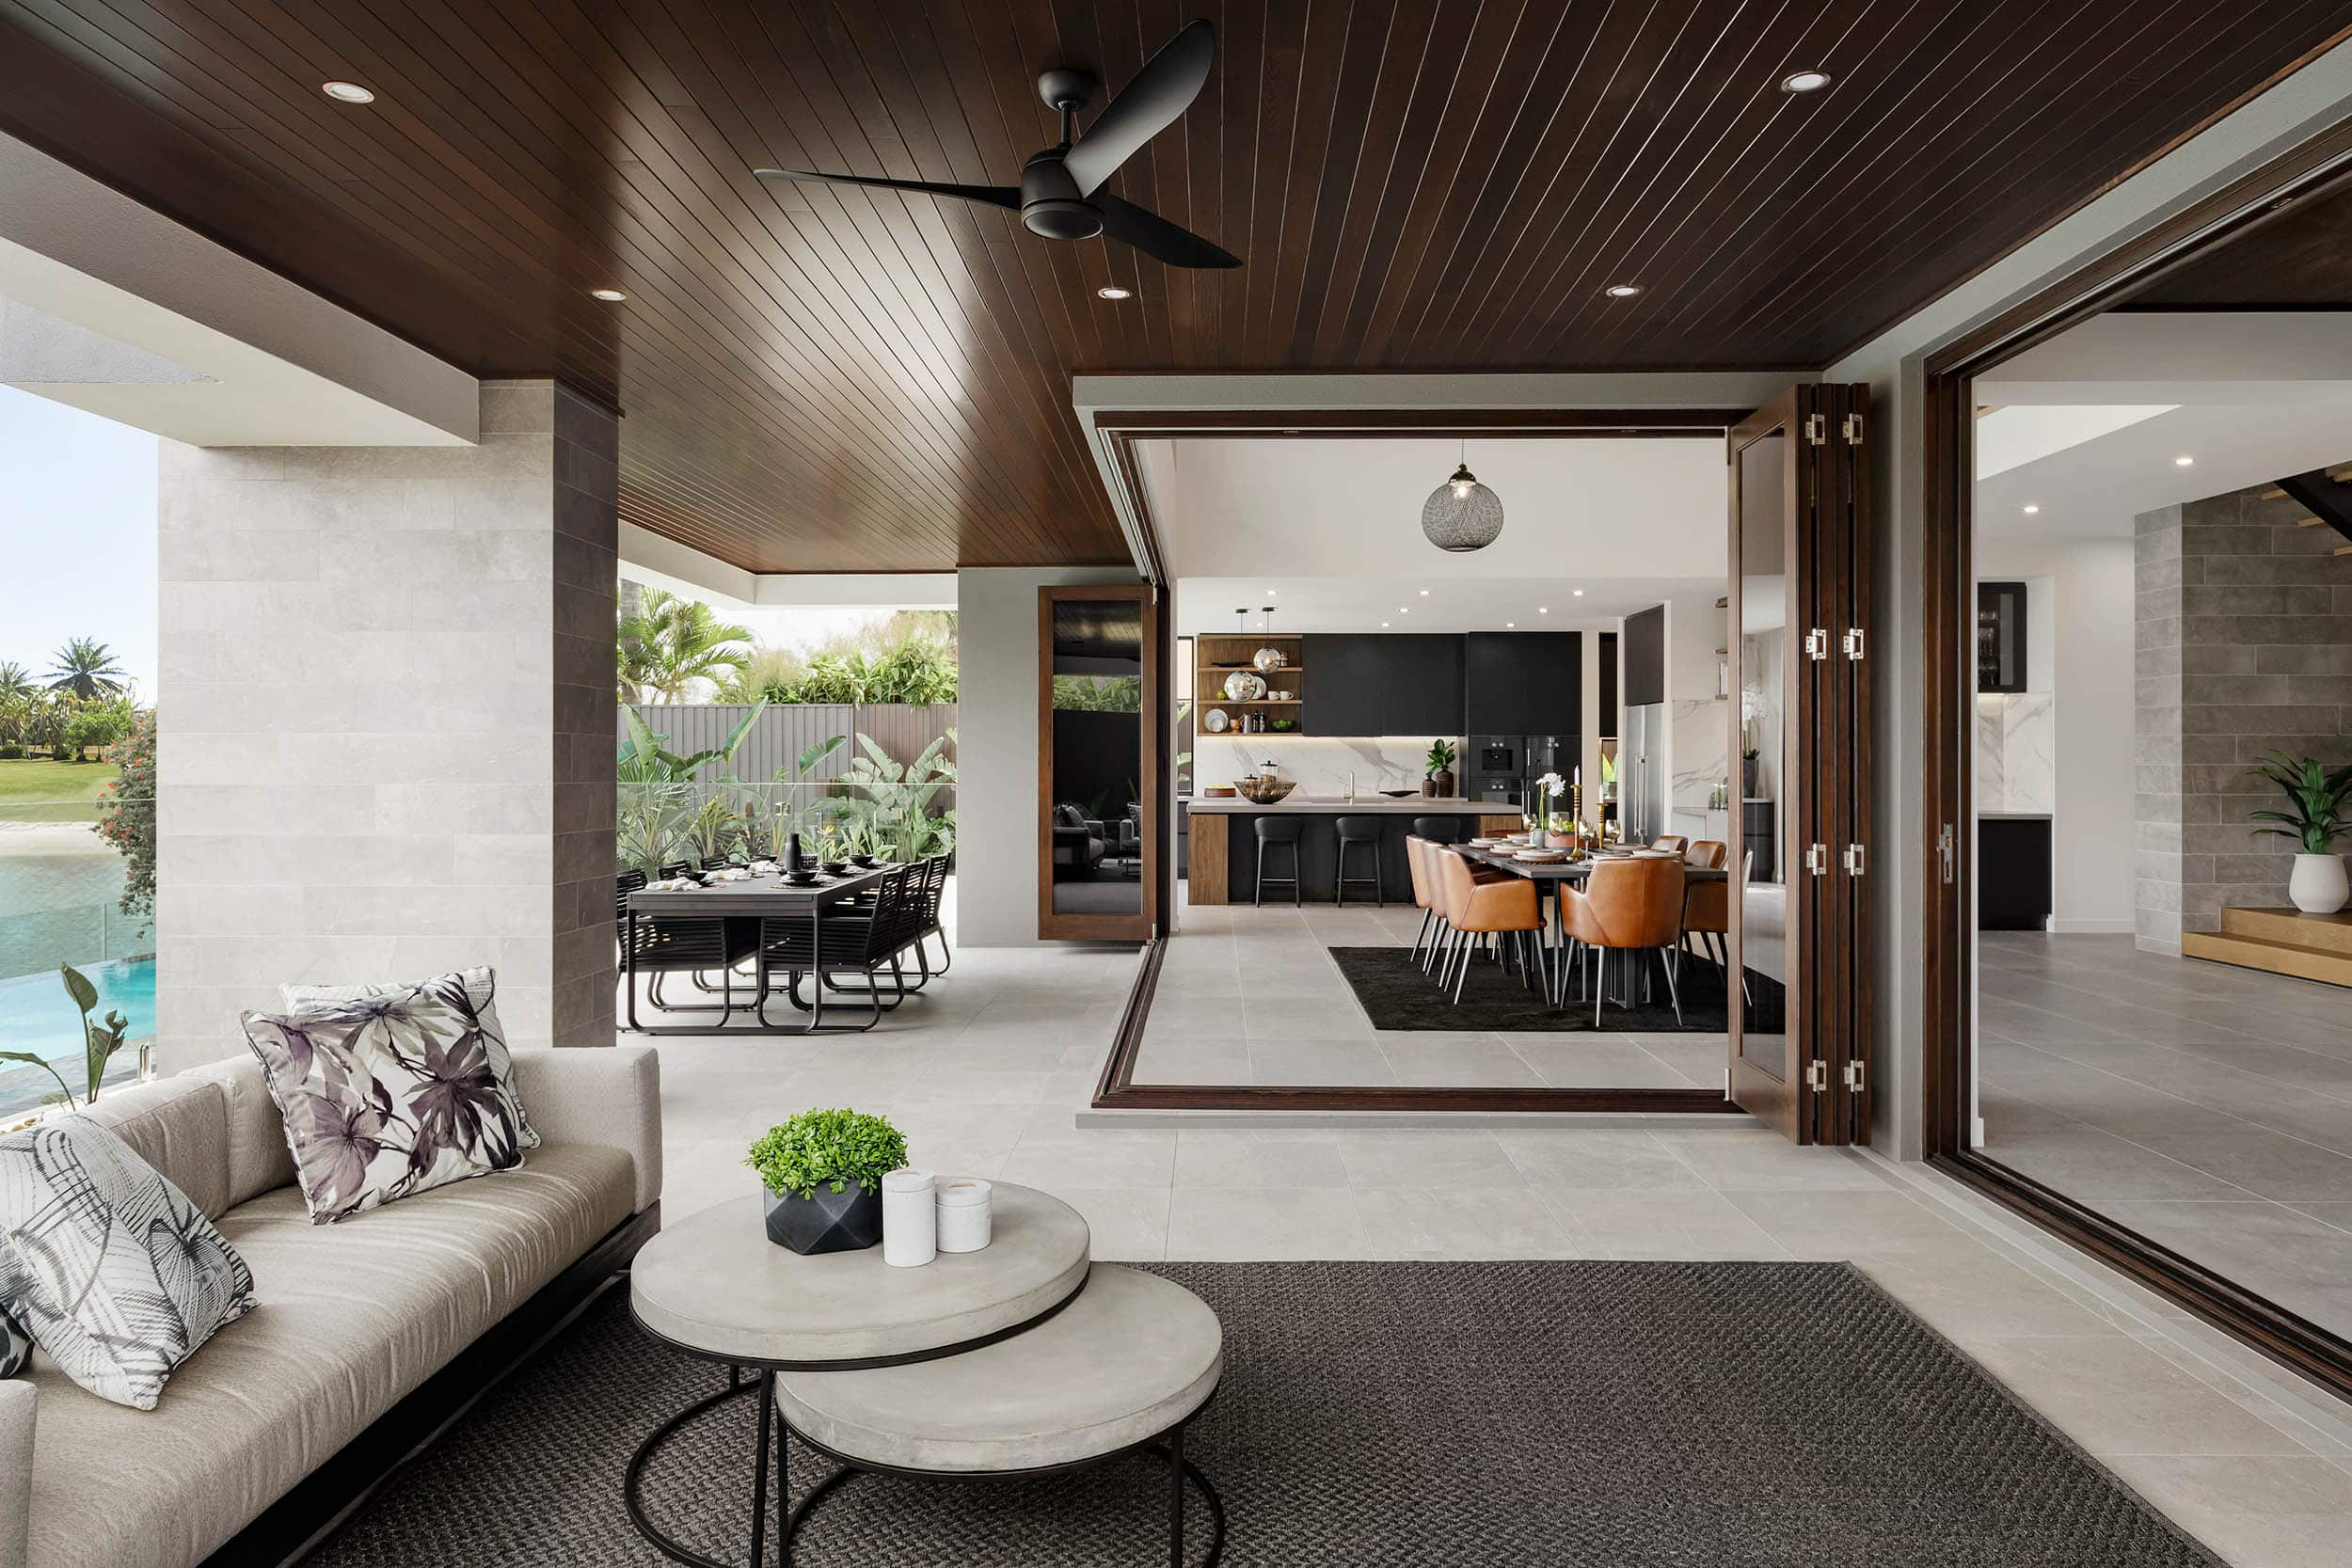 modern home with bi fold doors leading out to alfresco area metricon riviera show home